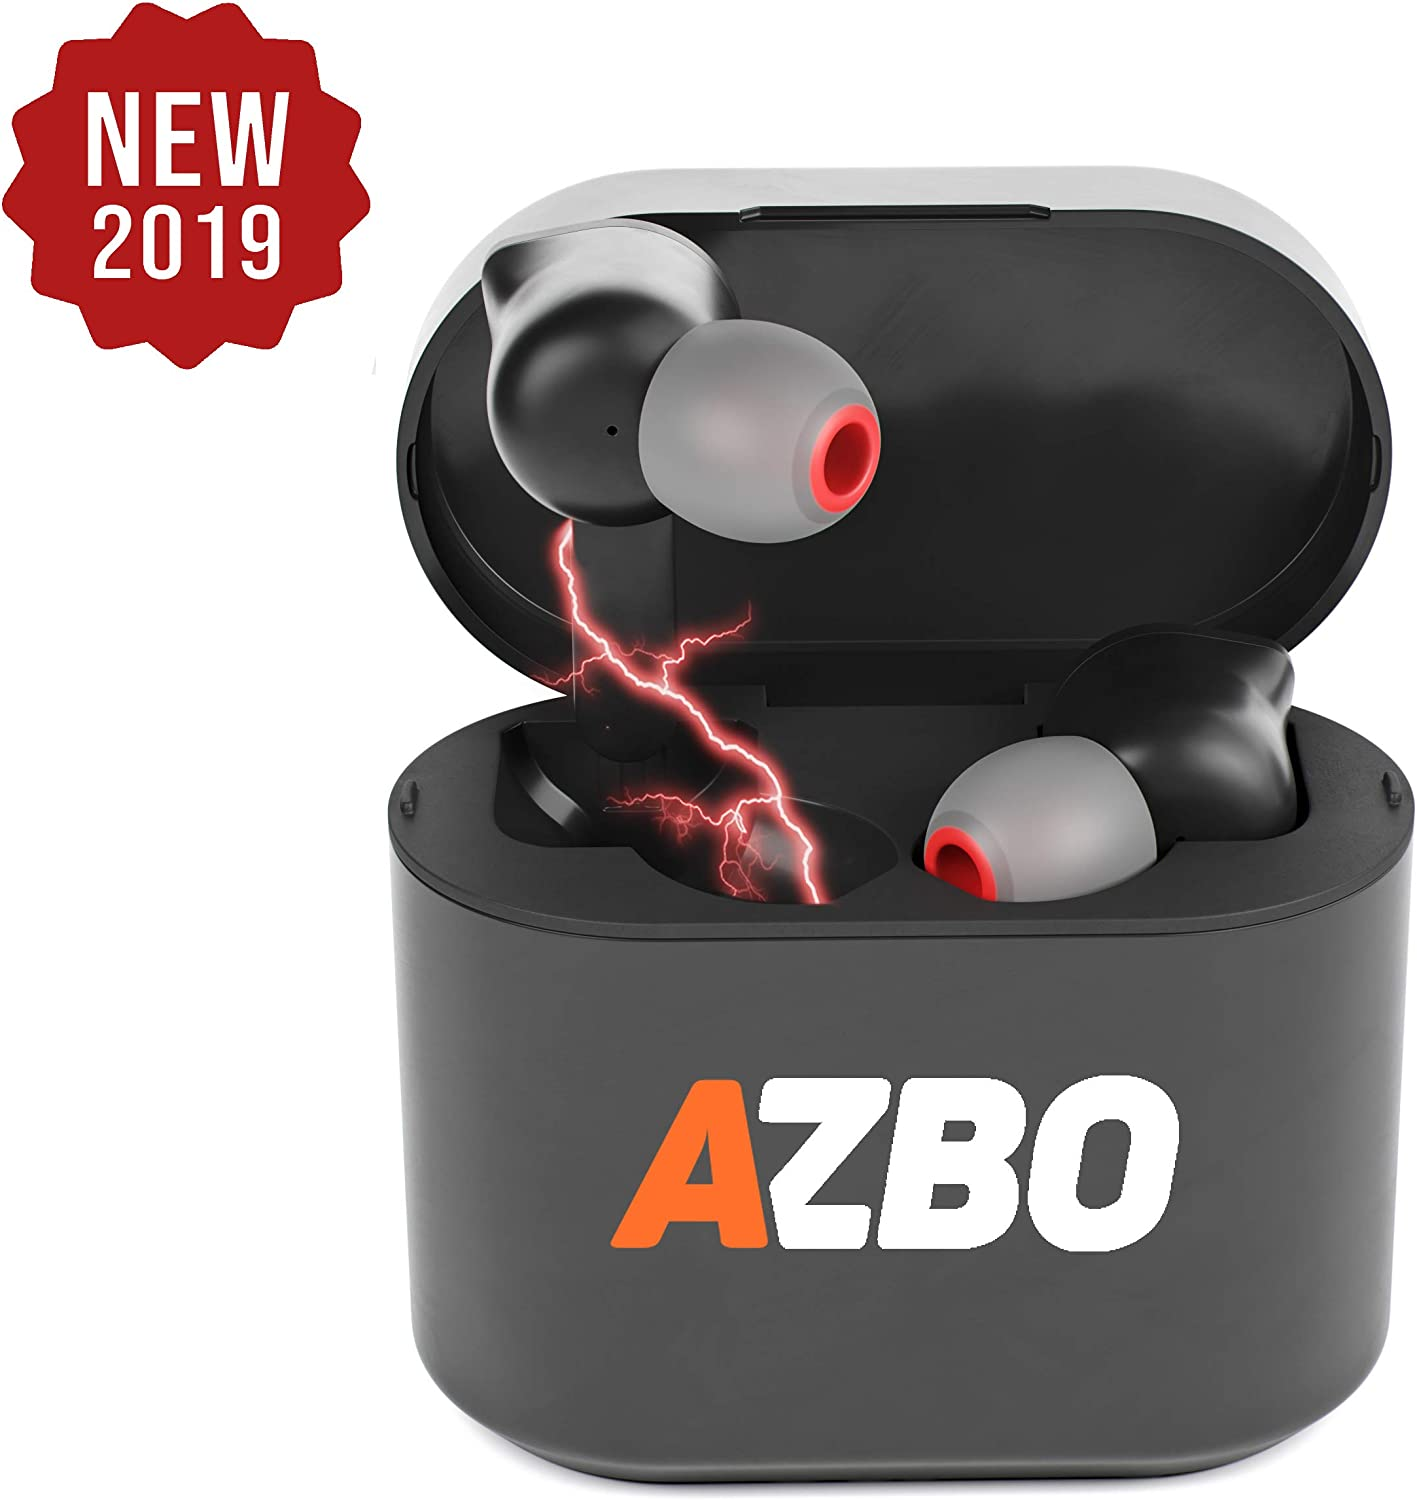 AZBO True Wireless Bluetooth Earbuds 5.0 by AZBO – iOS Android Compatible in-Ear Headphones – IPX Waterproof Stereo Sound Earphones with Microphone and Charging Case – 7 Hours Extended Playtime